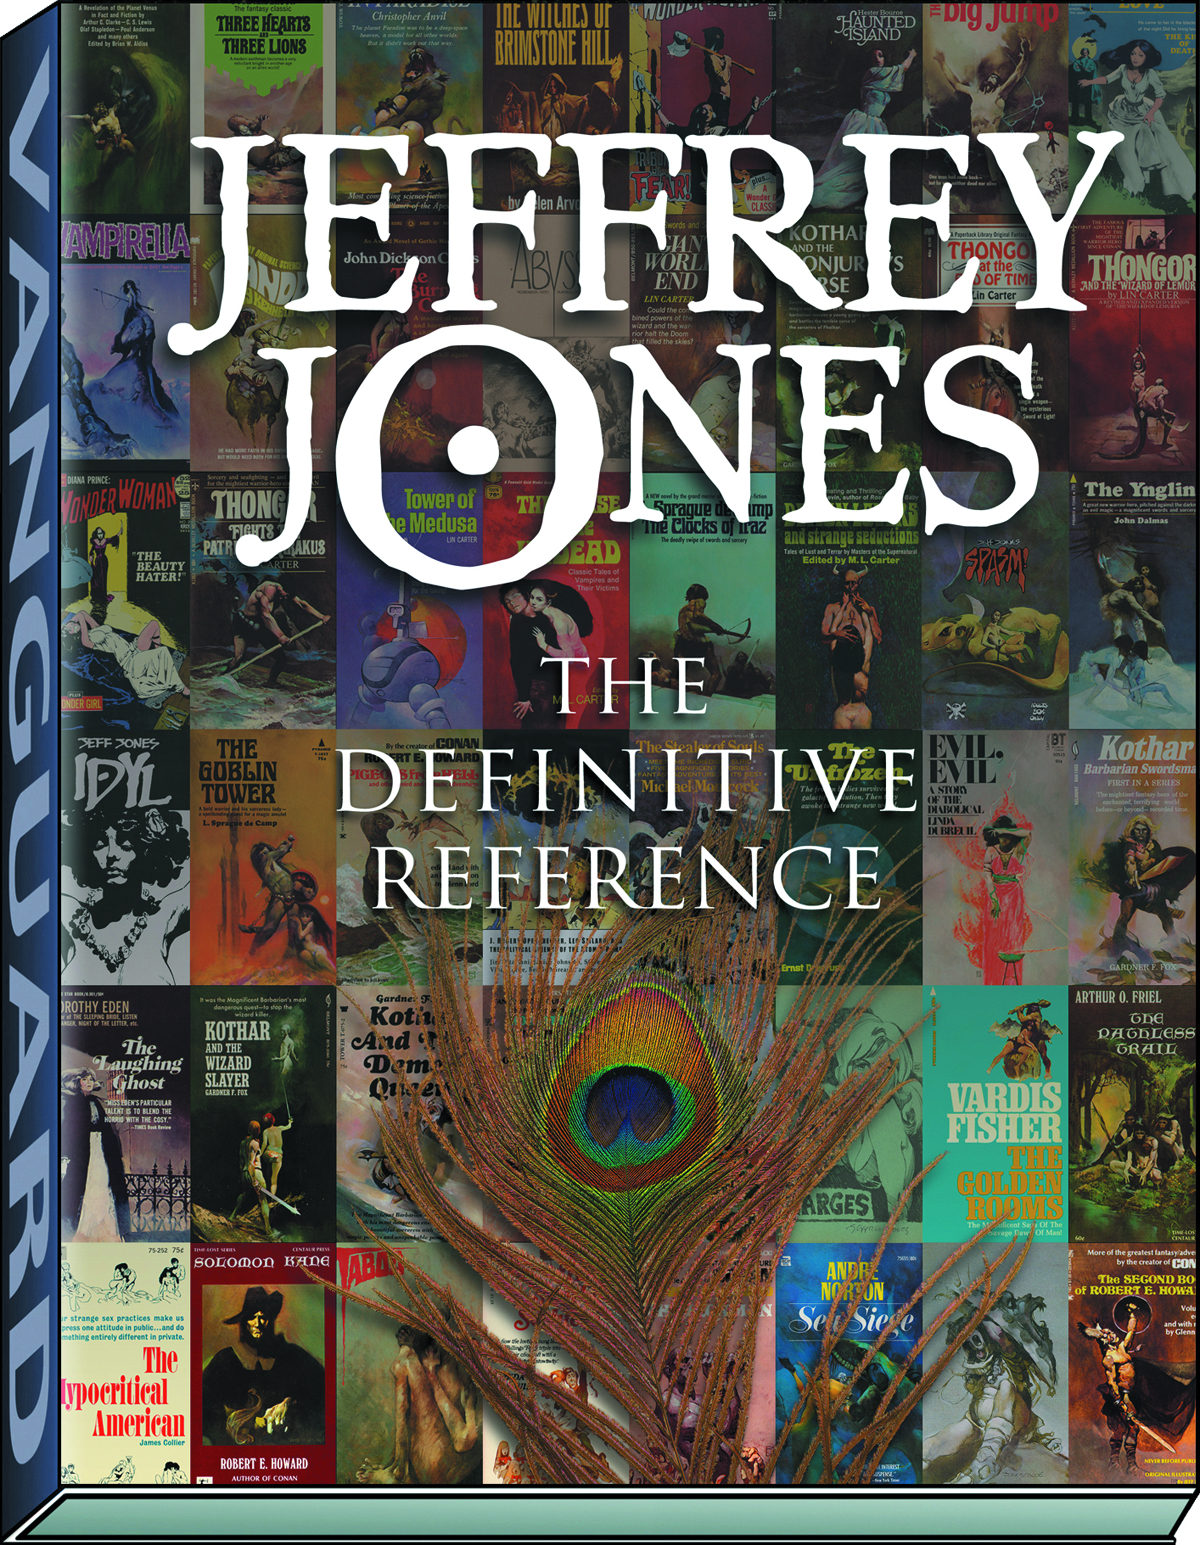 JEFFREY JONES DEFINITIVE REFERENCE HC